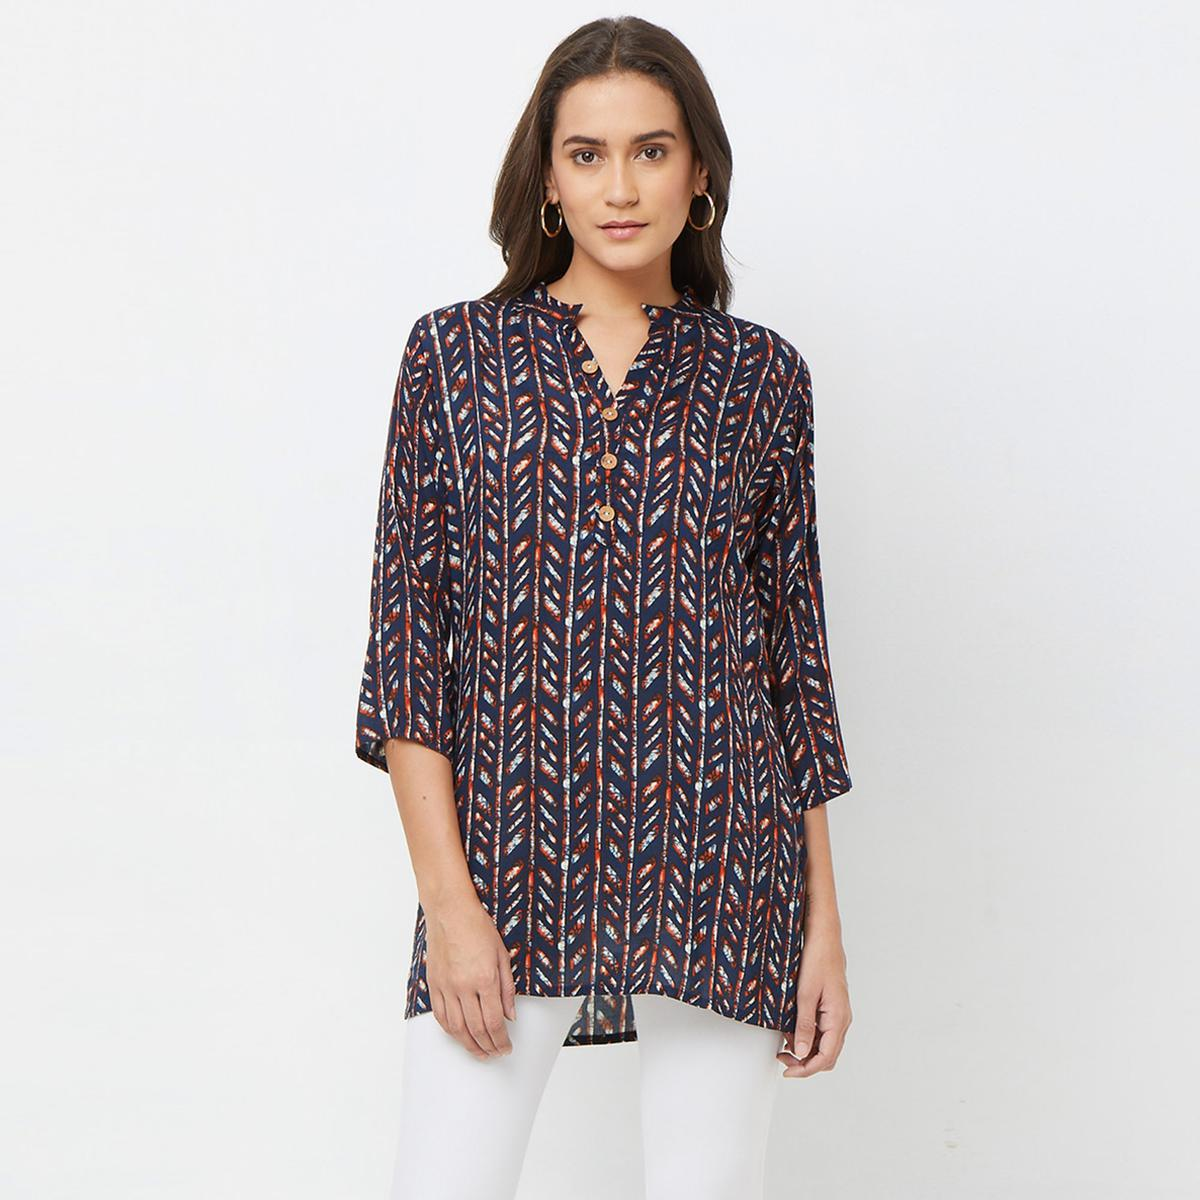 Sophisticated Navy Blue Colored Casual Printed Rayon top